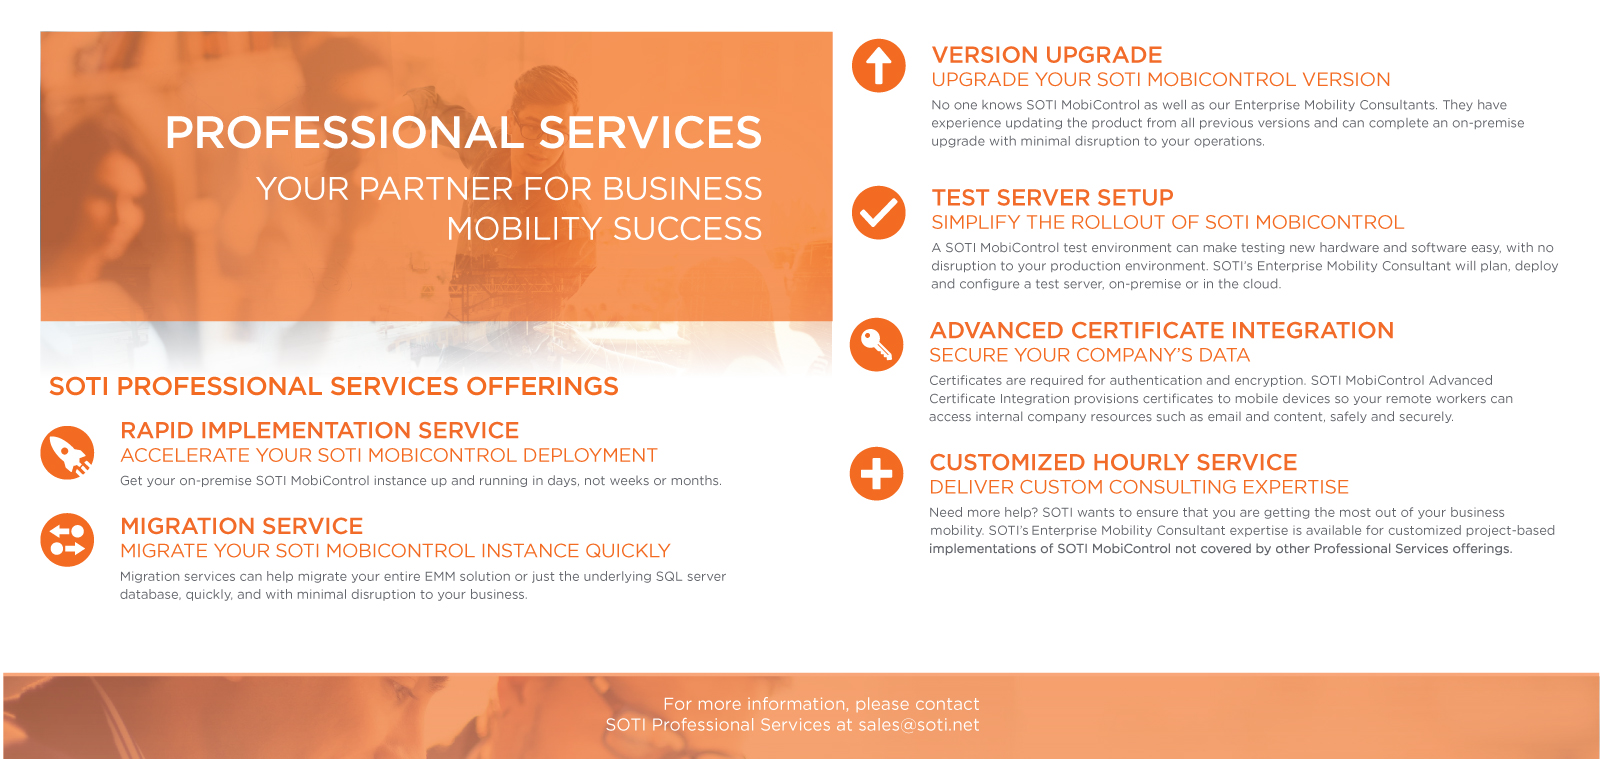 SOTI Professional Services - Professional Services | SOTI